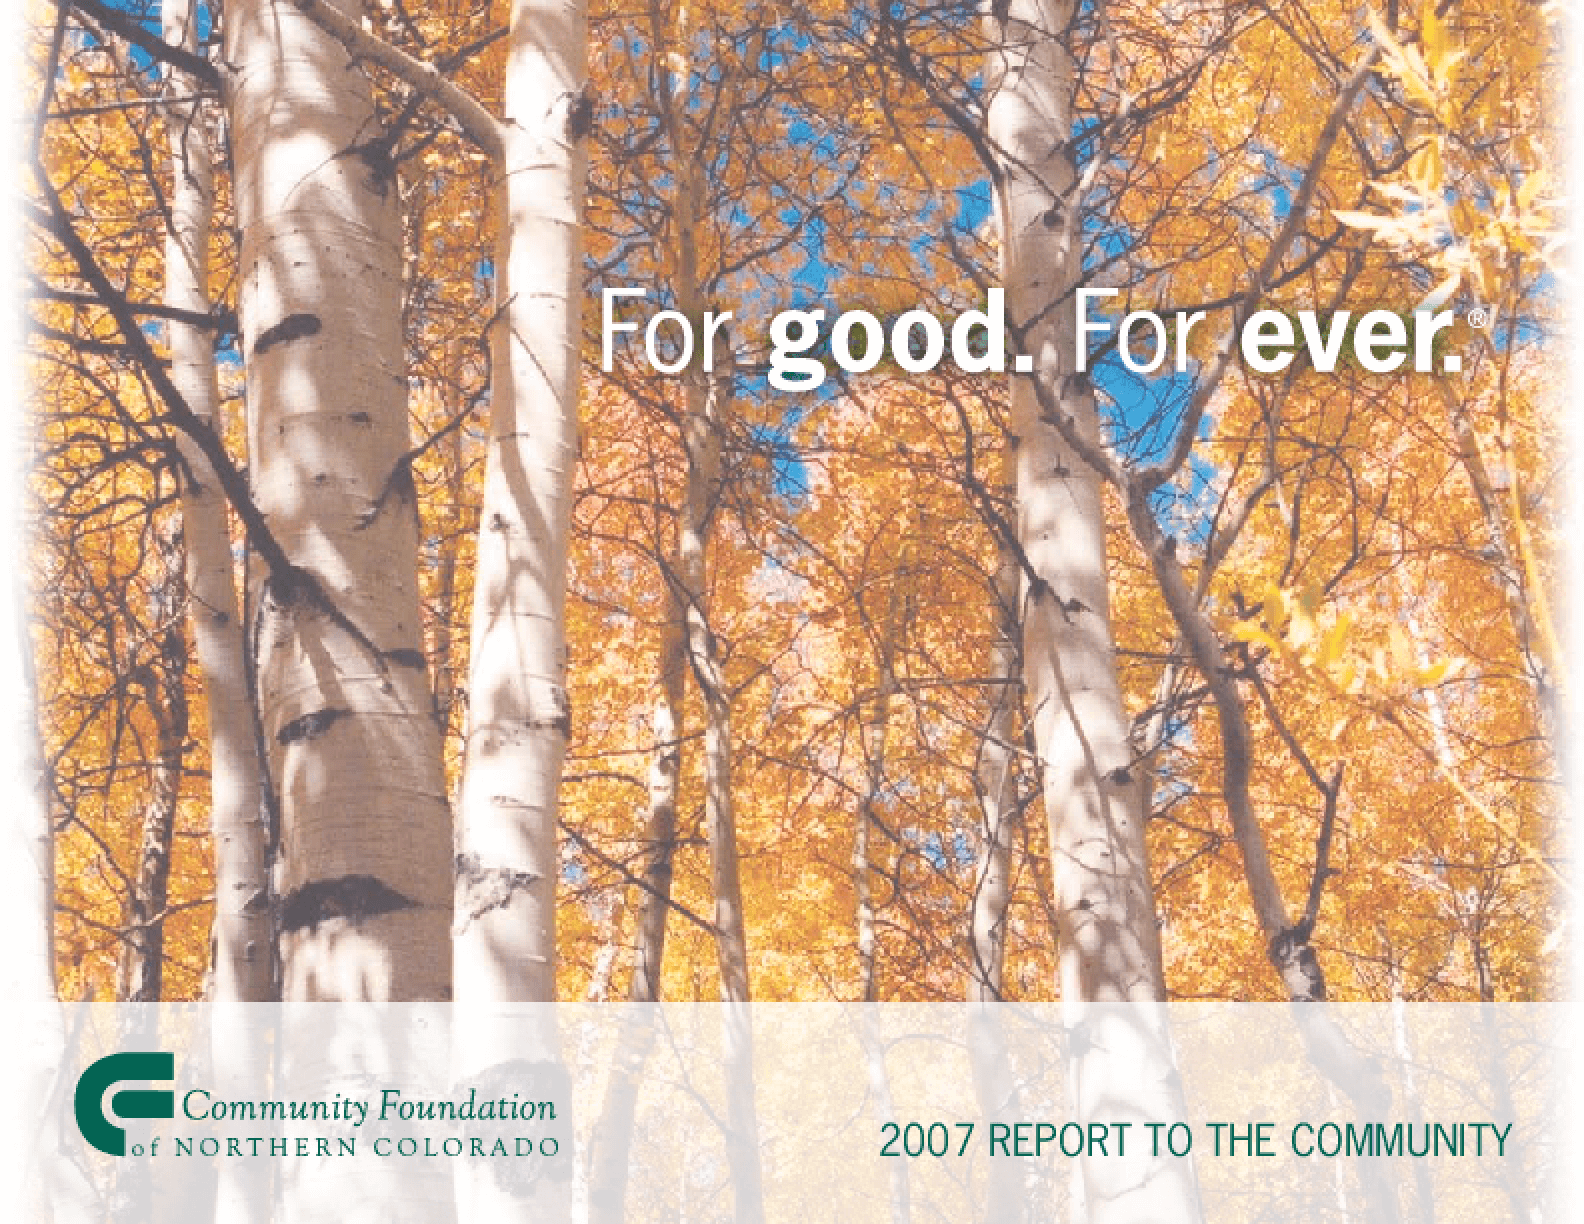 Community Foundation of Northern Colorado - 2007 Annual Report